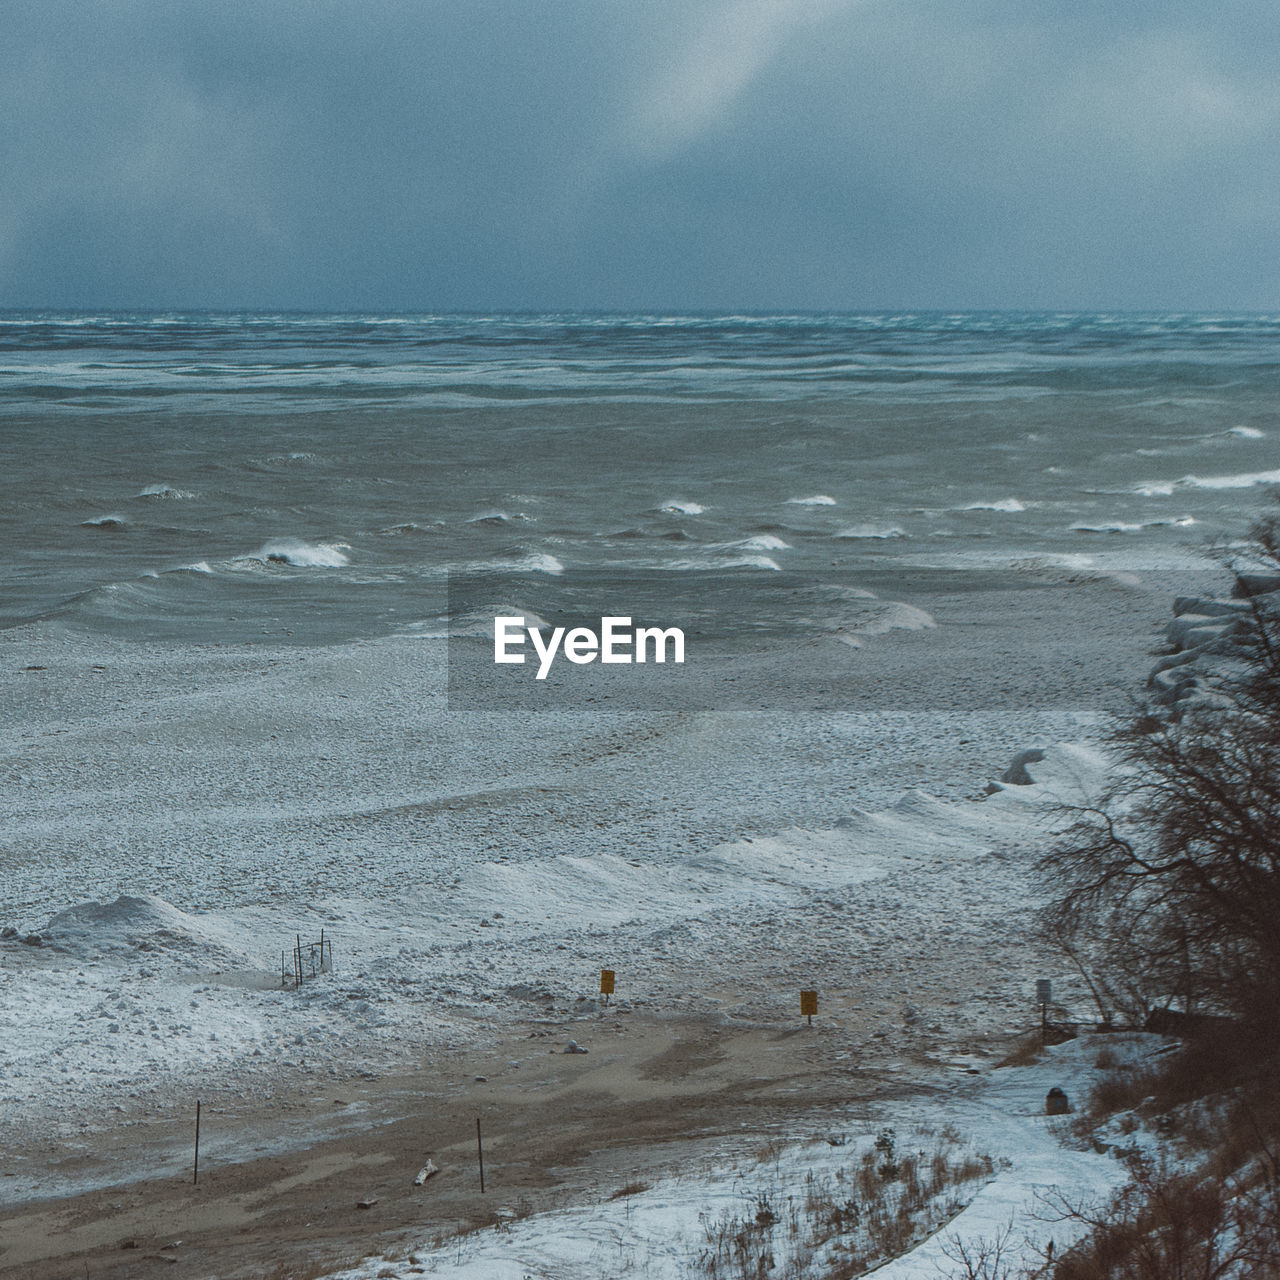 View of beach covered in snow